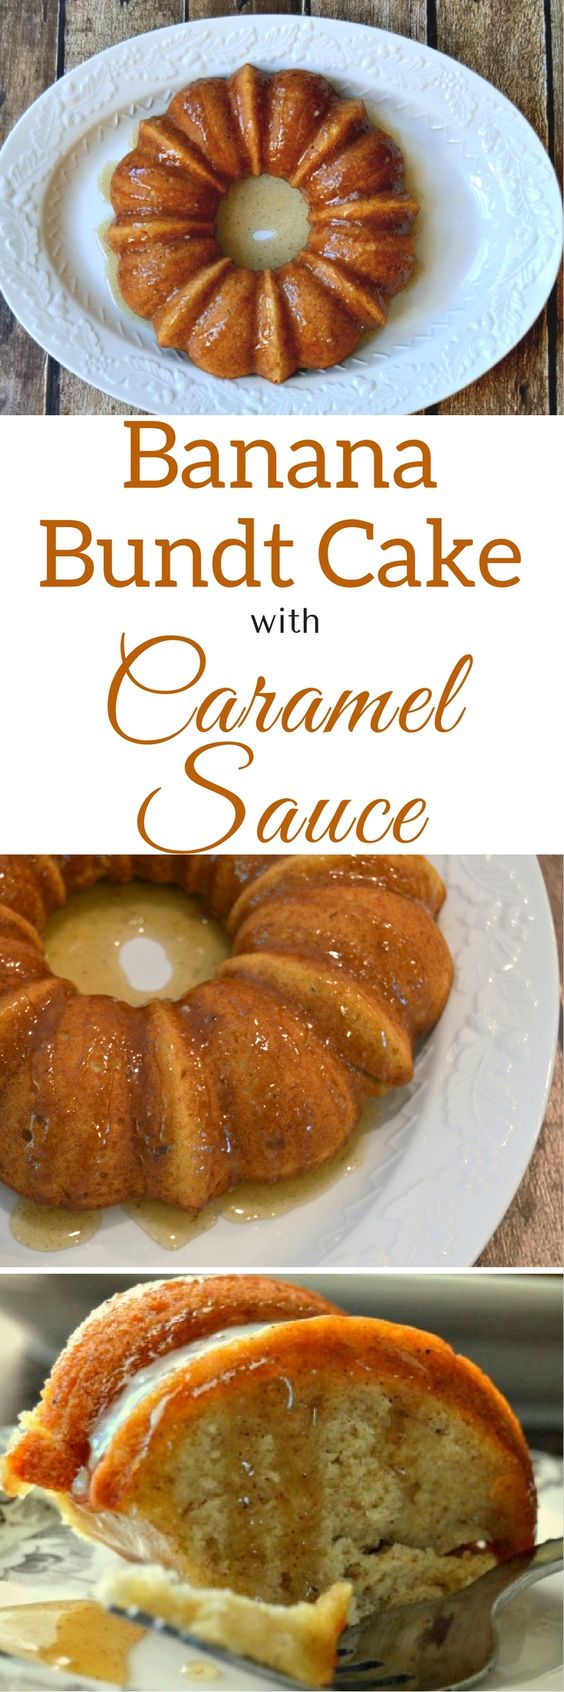 Banana Bundt Cake with Caramel Sauce - My favorite way to use ripe bananas! So moist and decadent, and you can freeze it, too. | via HousewifeHowTos.com